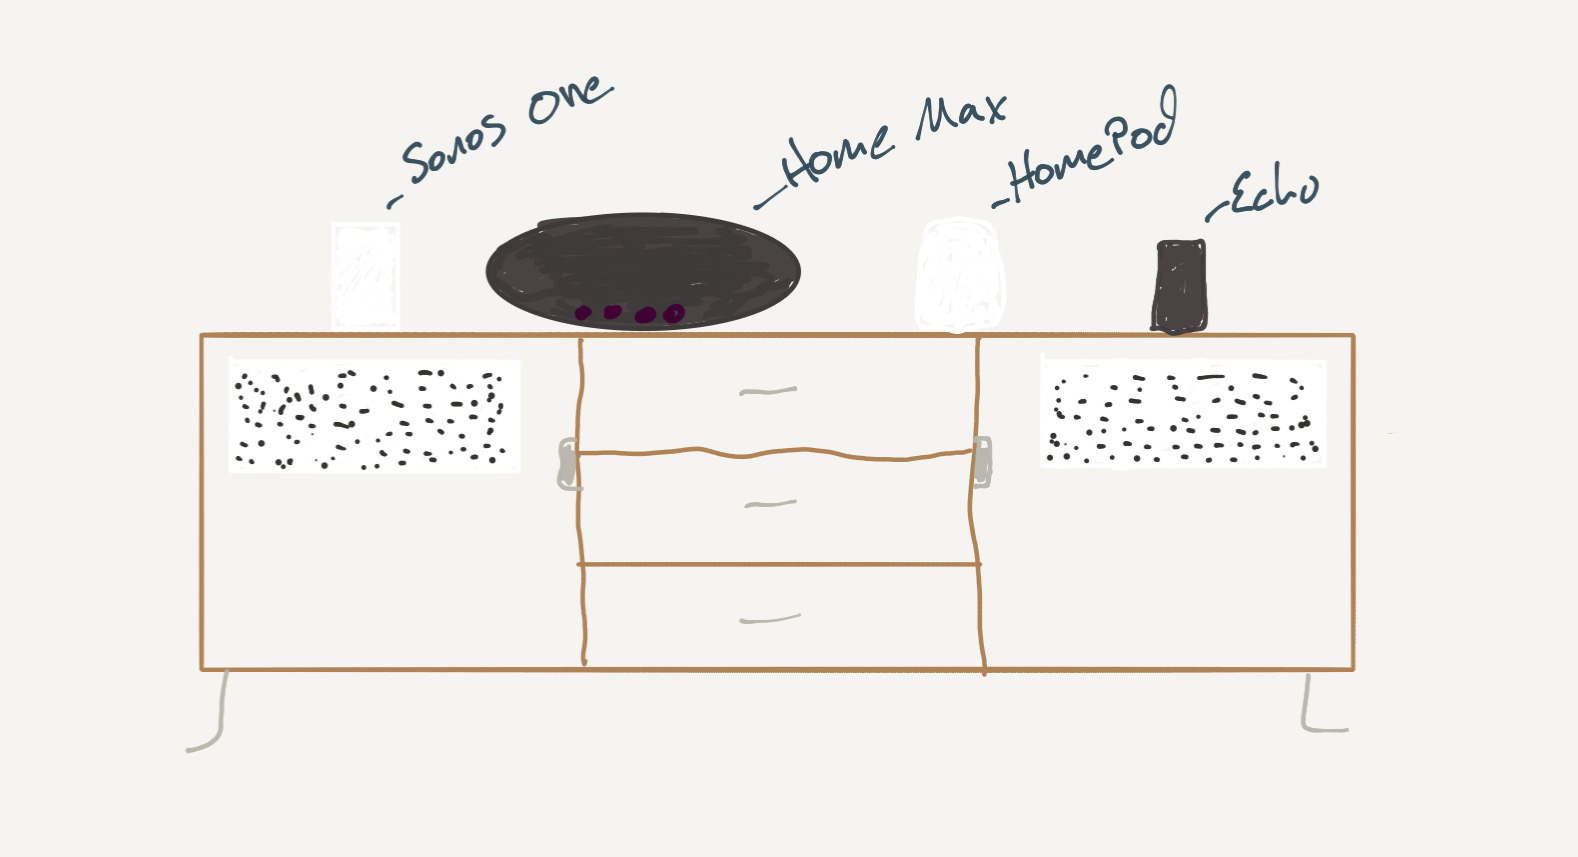 You Can't Unhear Apple's HomePod – Tech pinions